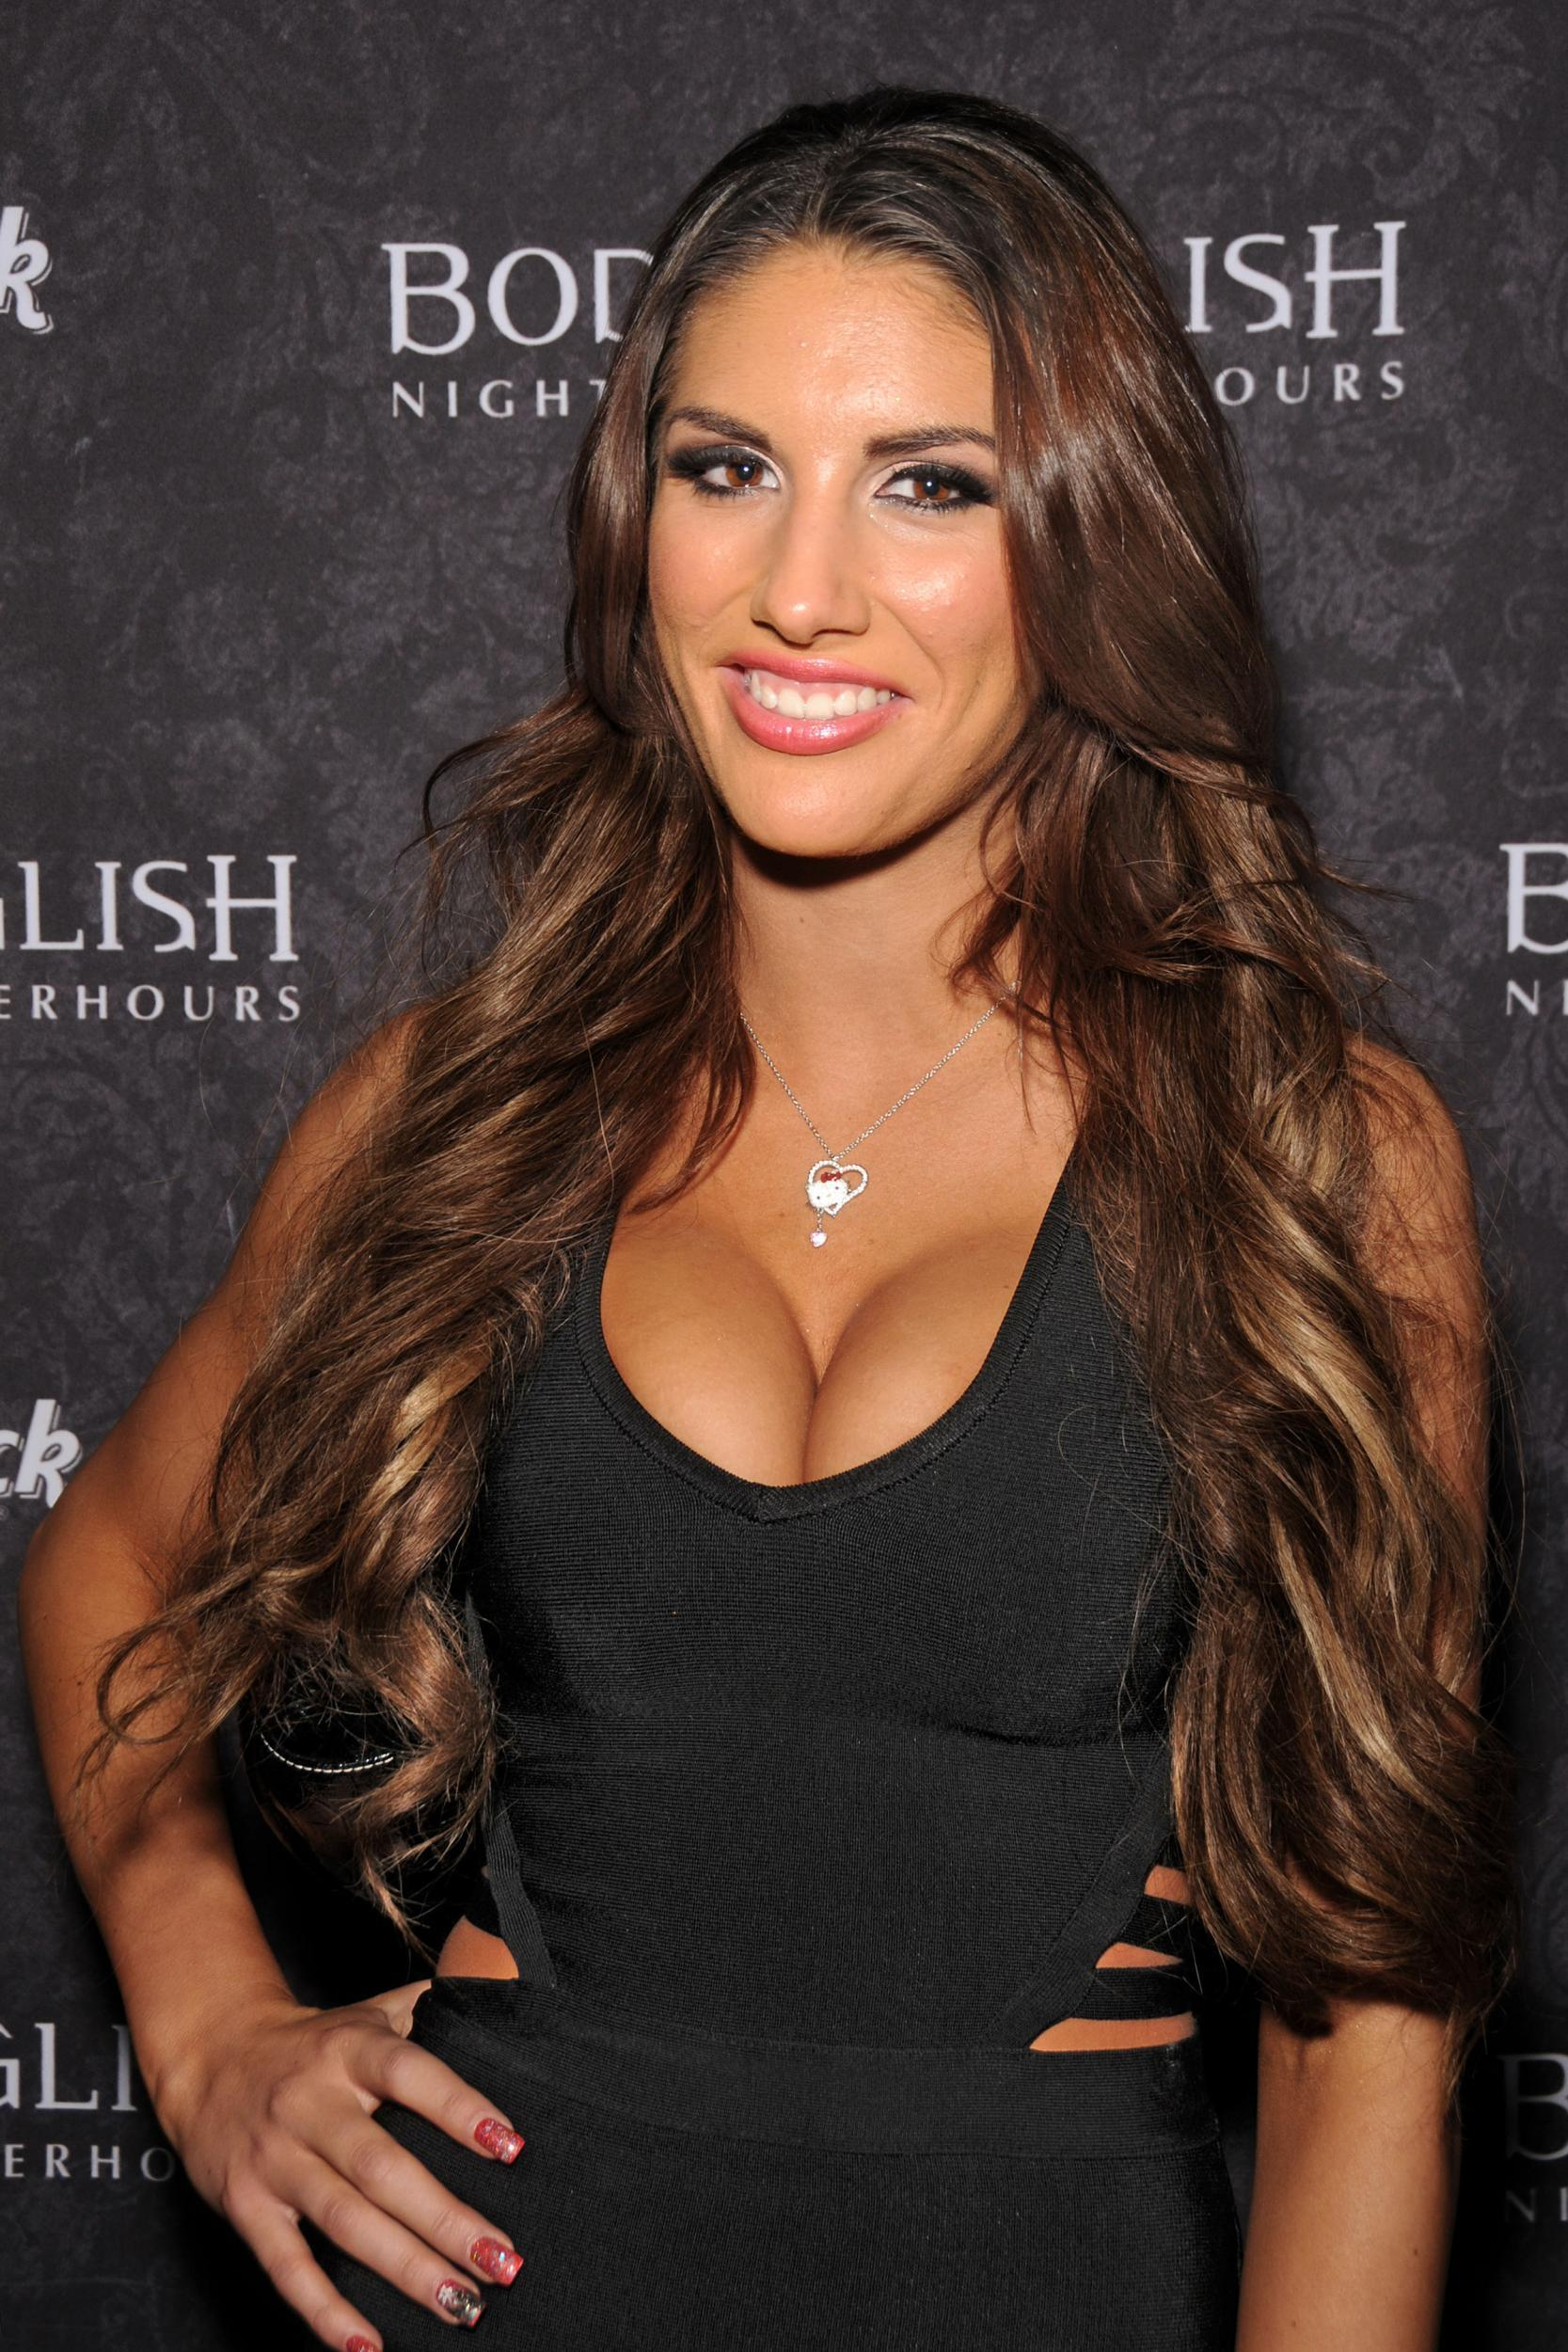 August Ames Husband >> August Ames Adult Film Star Revealed Tragic Past Of Sexual Abuse